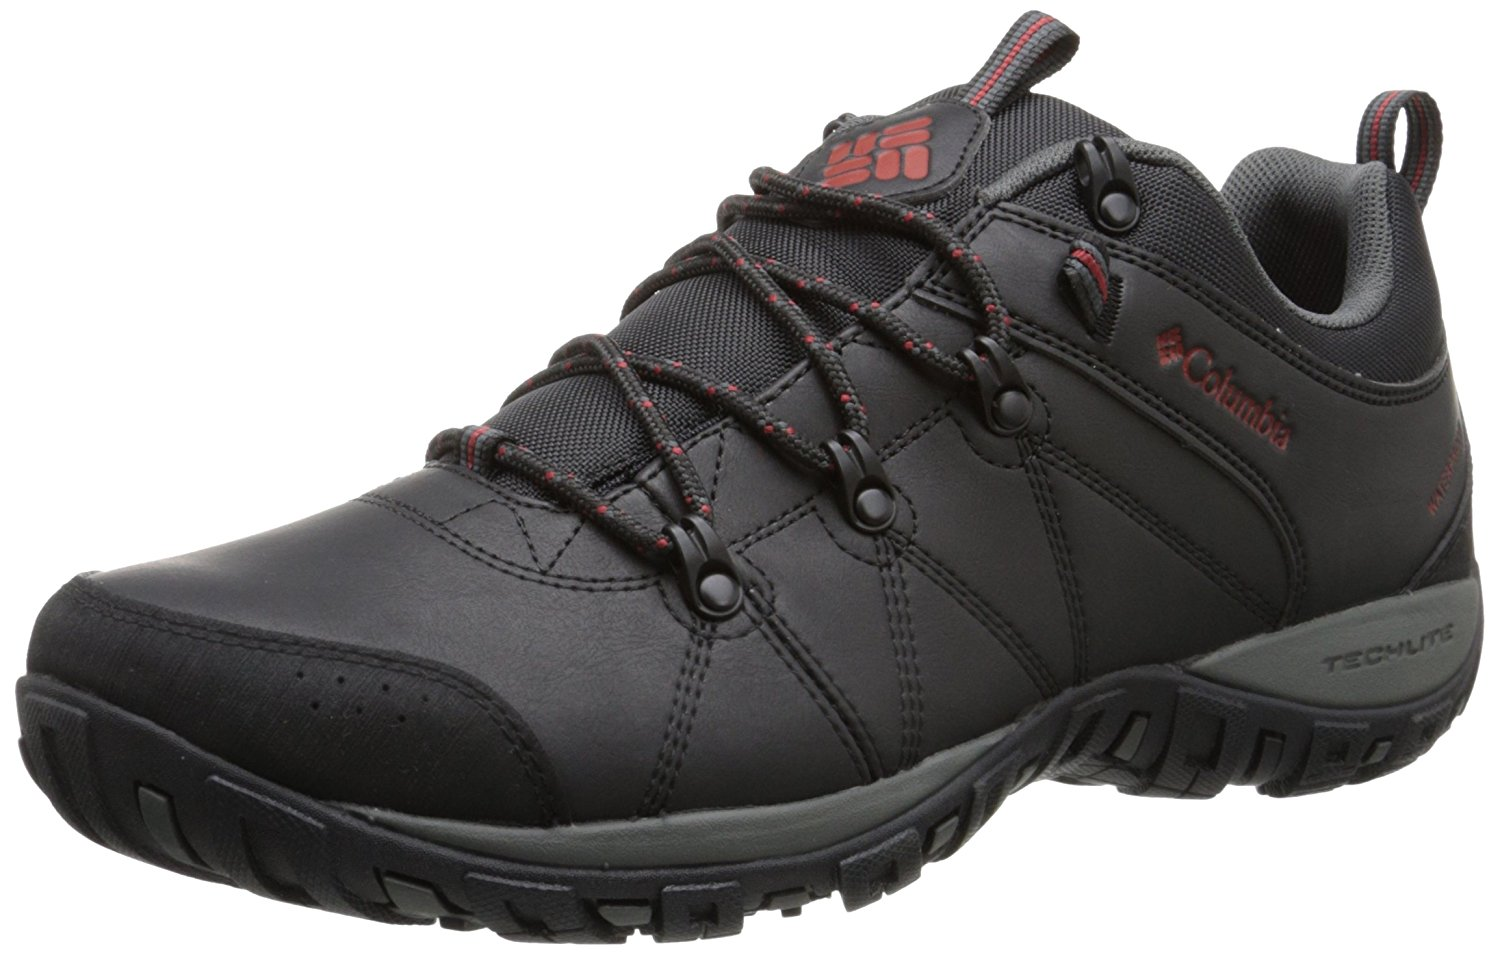 Columbia peakfreak Venture waterproof, men's low hiking shoes